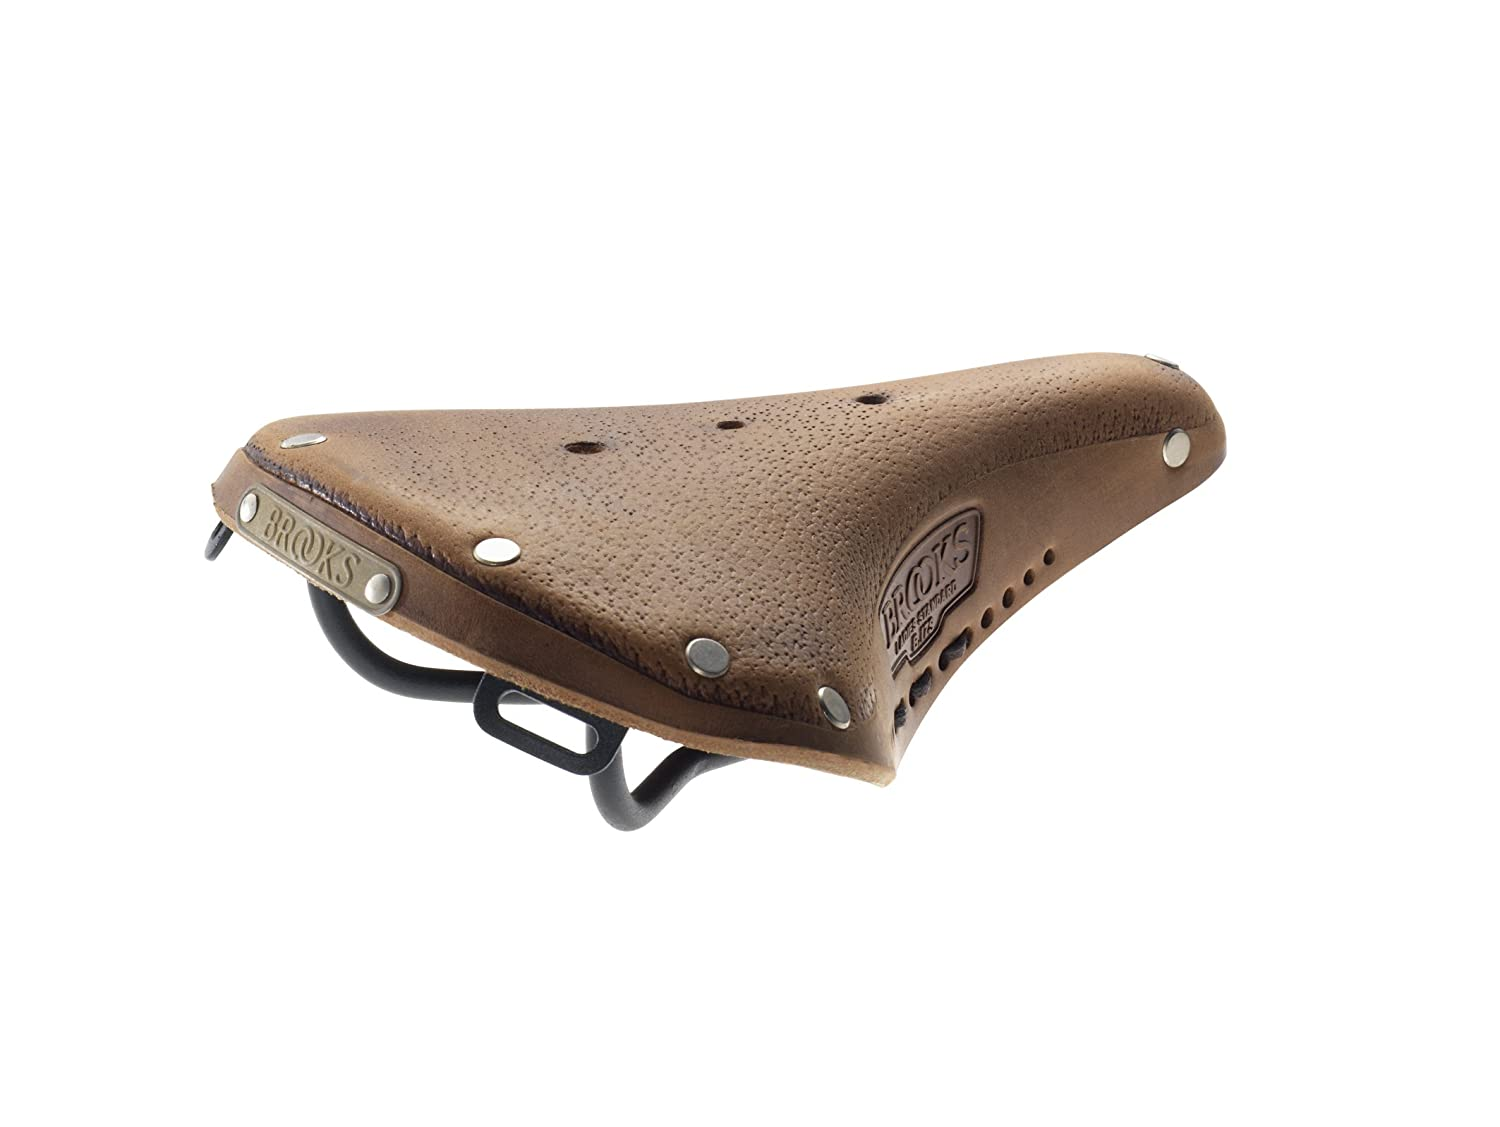 Associated product image for Brooks Saddles B17 Standard S Bicycle Saddle (Women's)